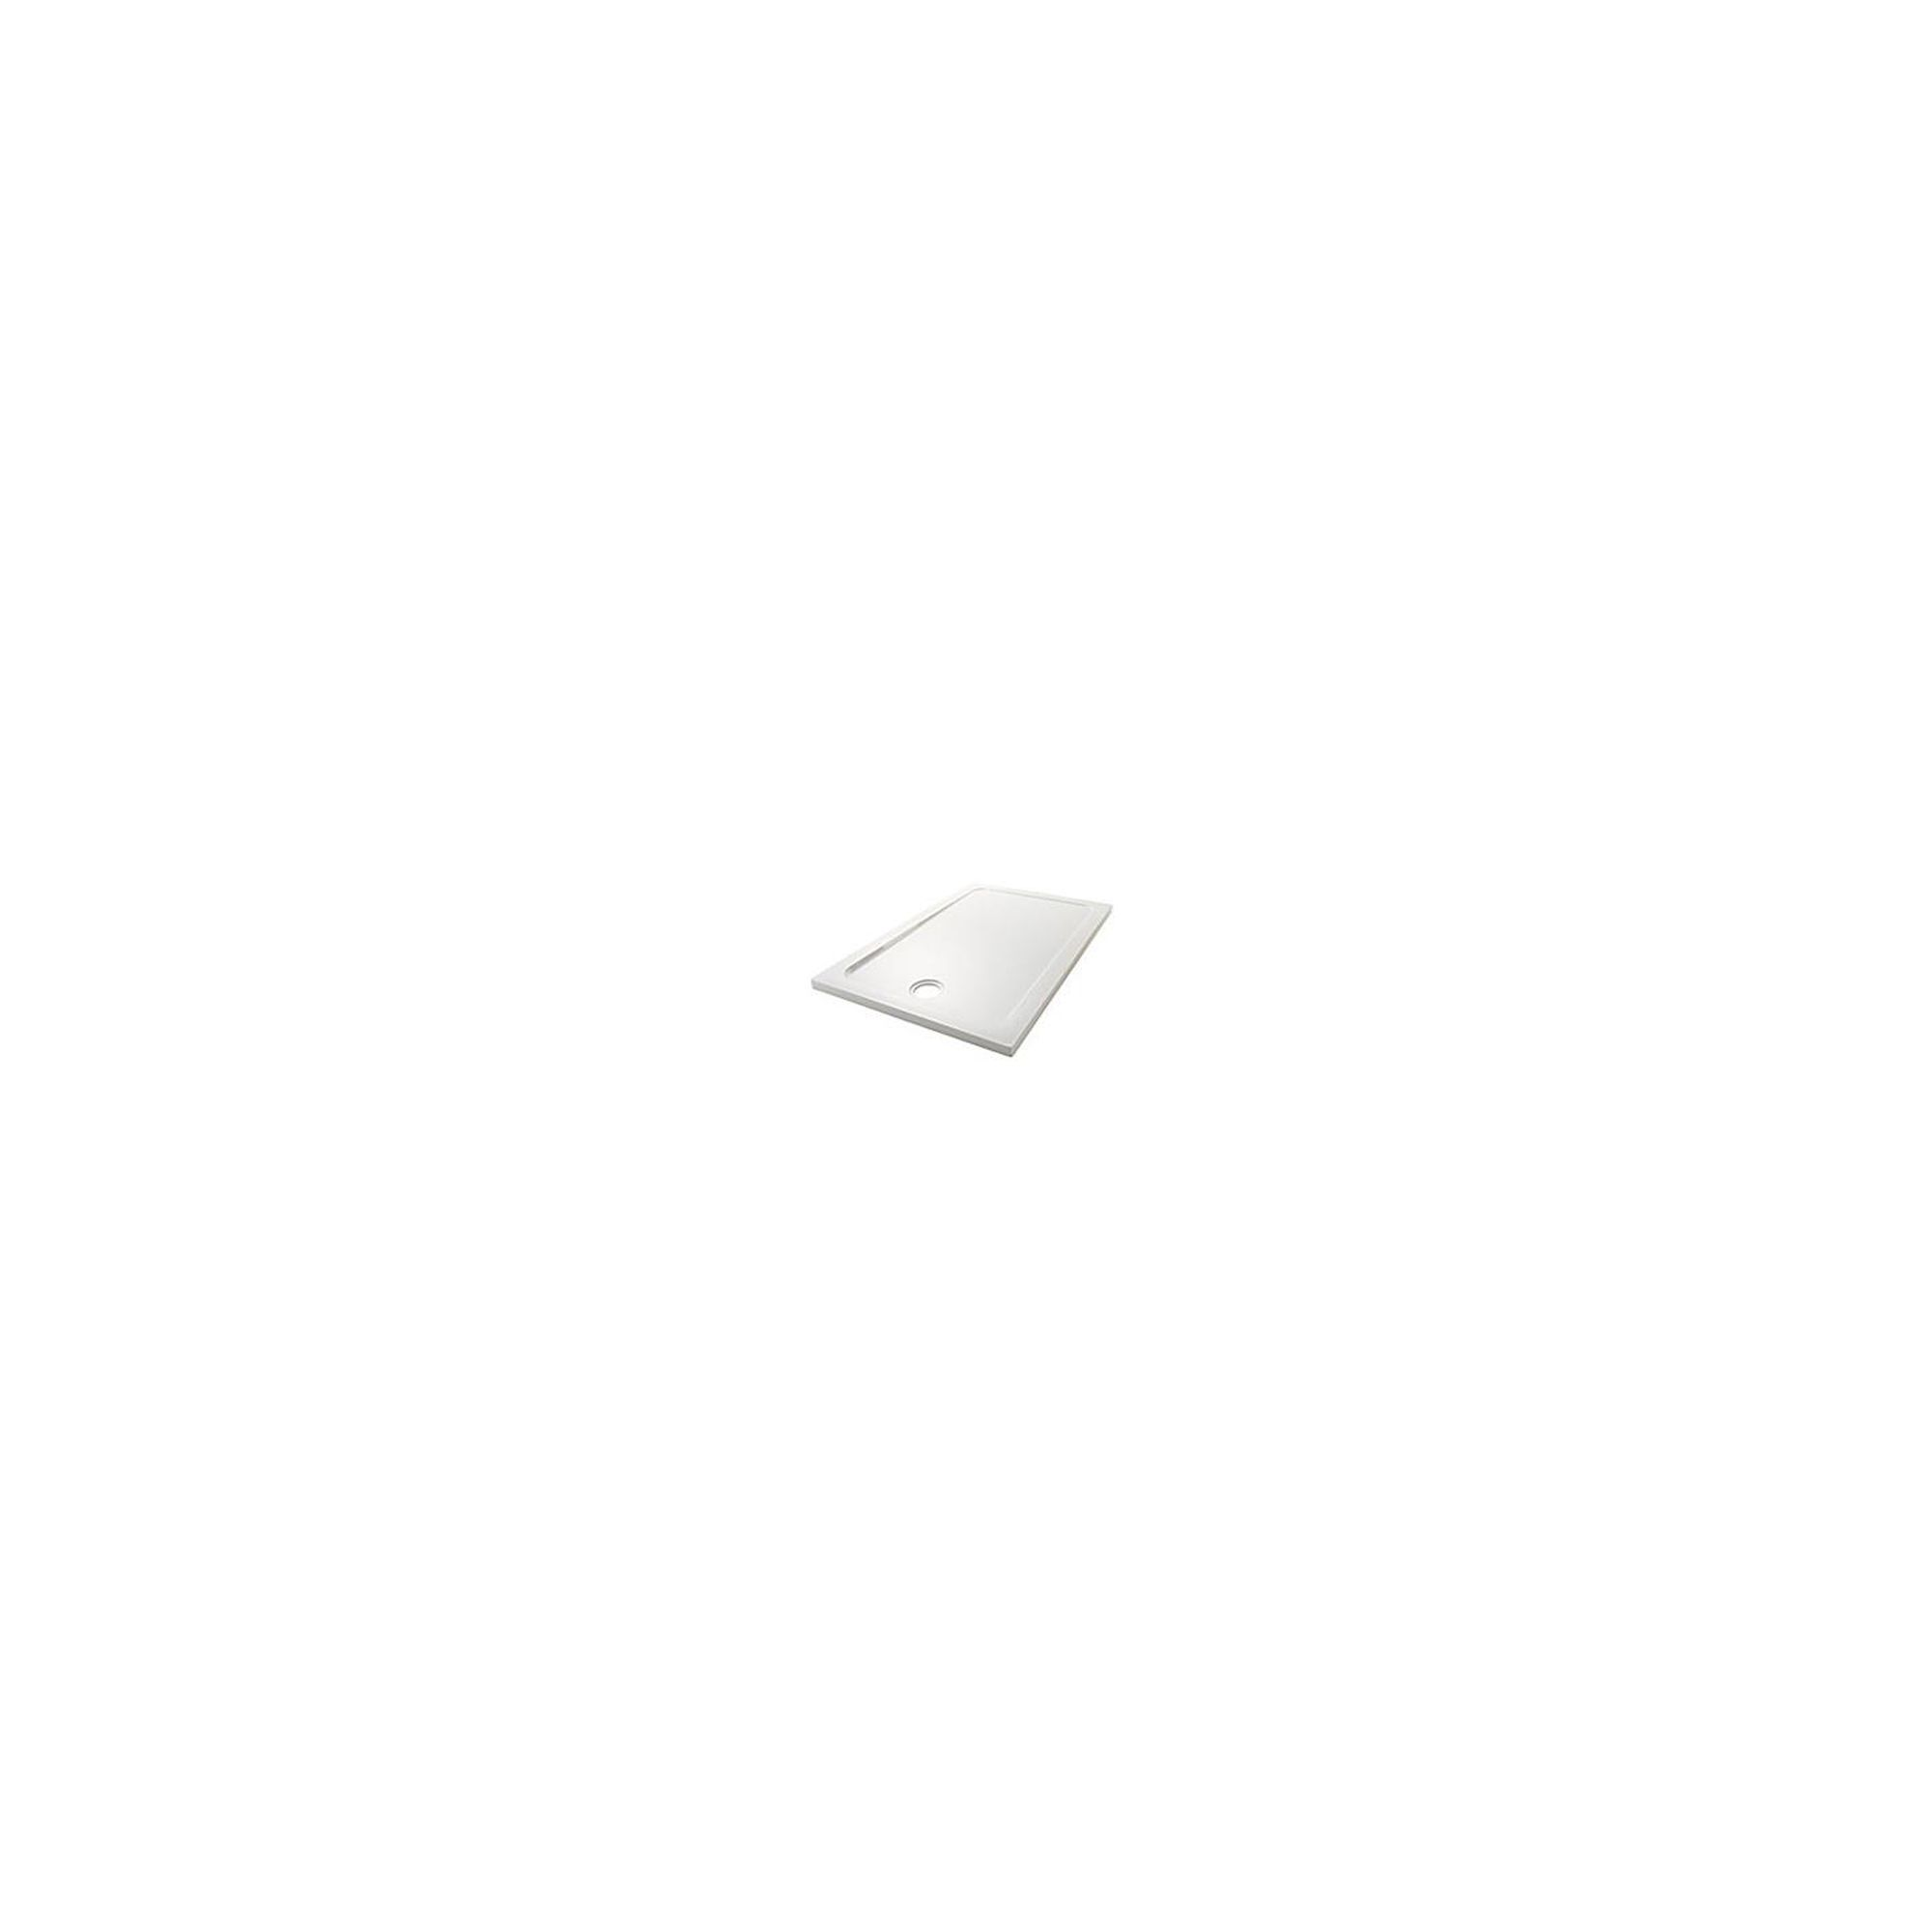 Mira Flight Low Profile Rectangular Shower Tray 1500mm x 760mm at Tesco Direct